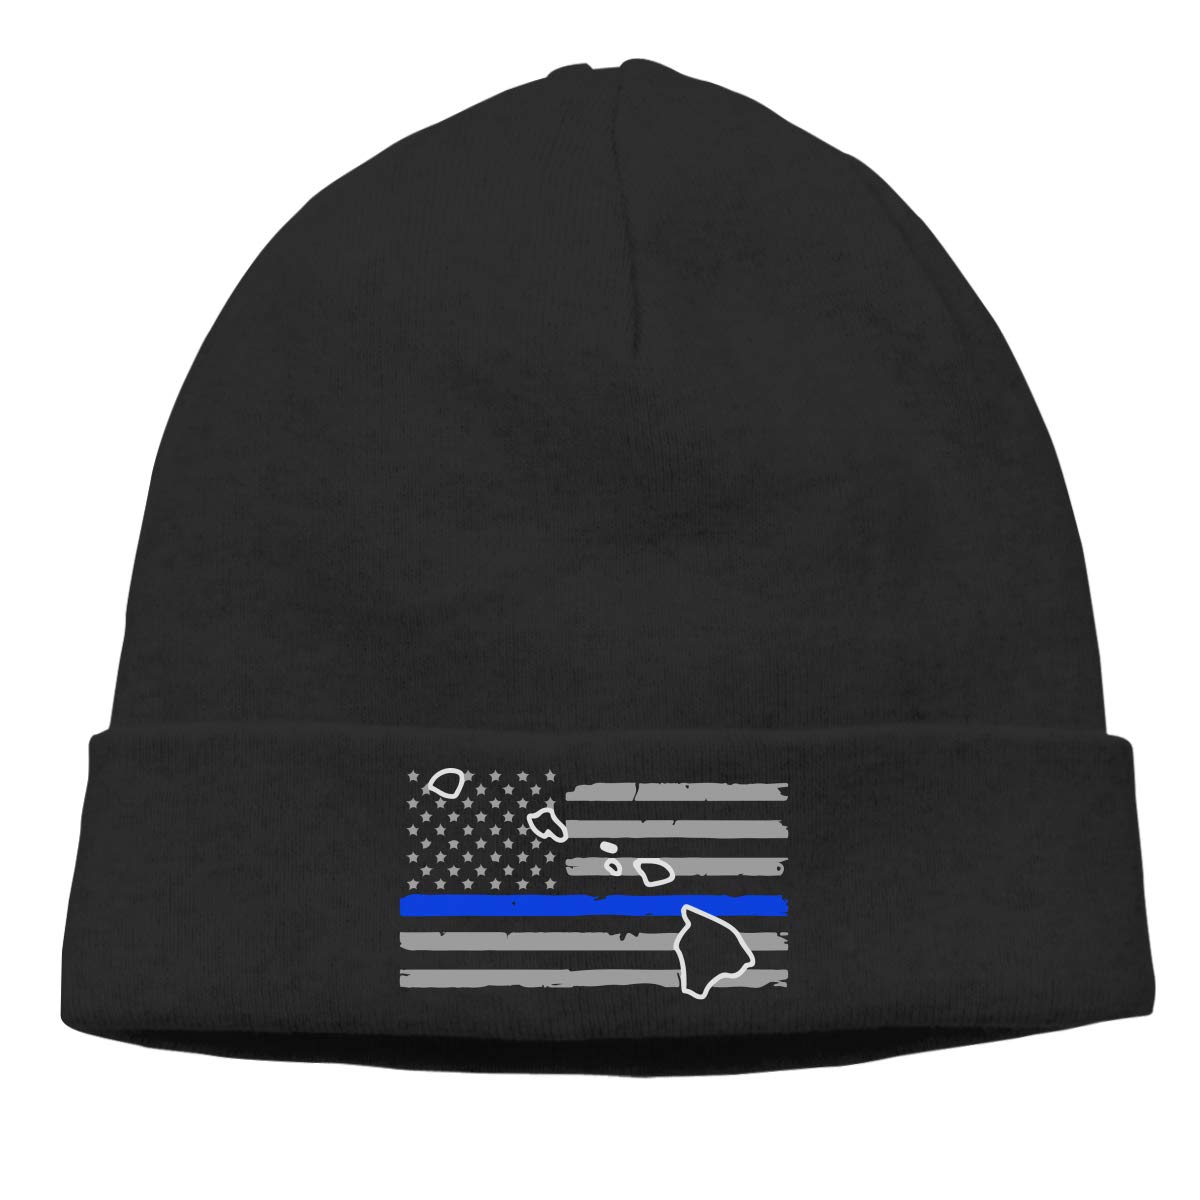 Thin Stretchy /& Soft Winter Cap Hawaii Thin Blue Line Flag Women Men Solid Color Beanie Hat